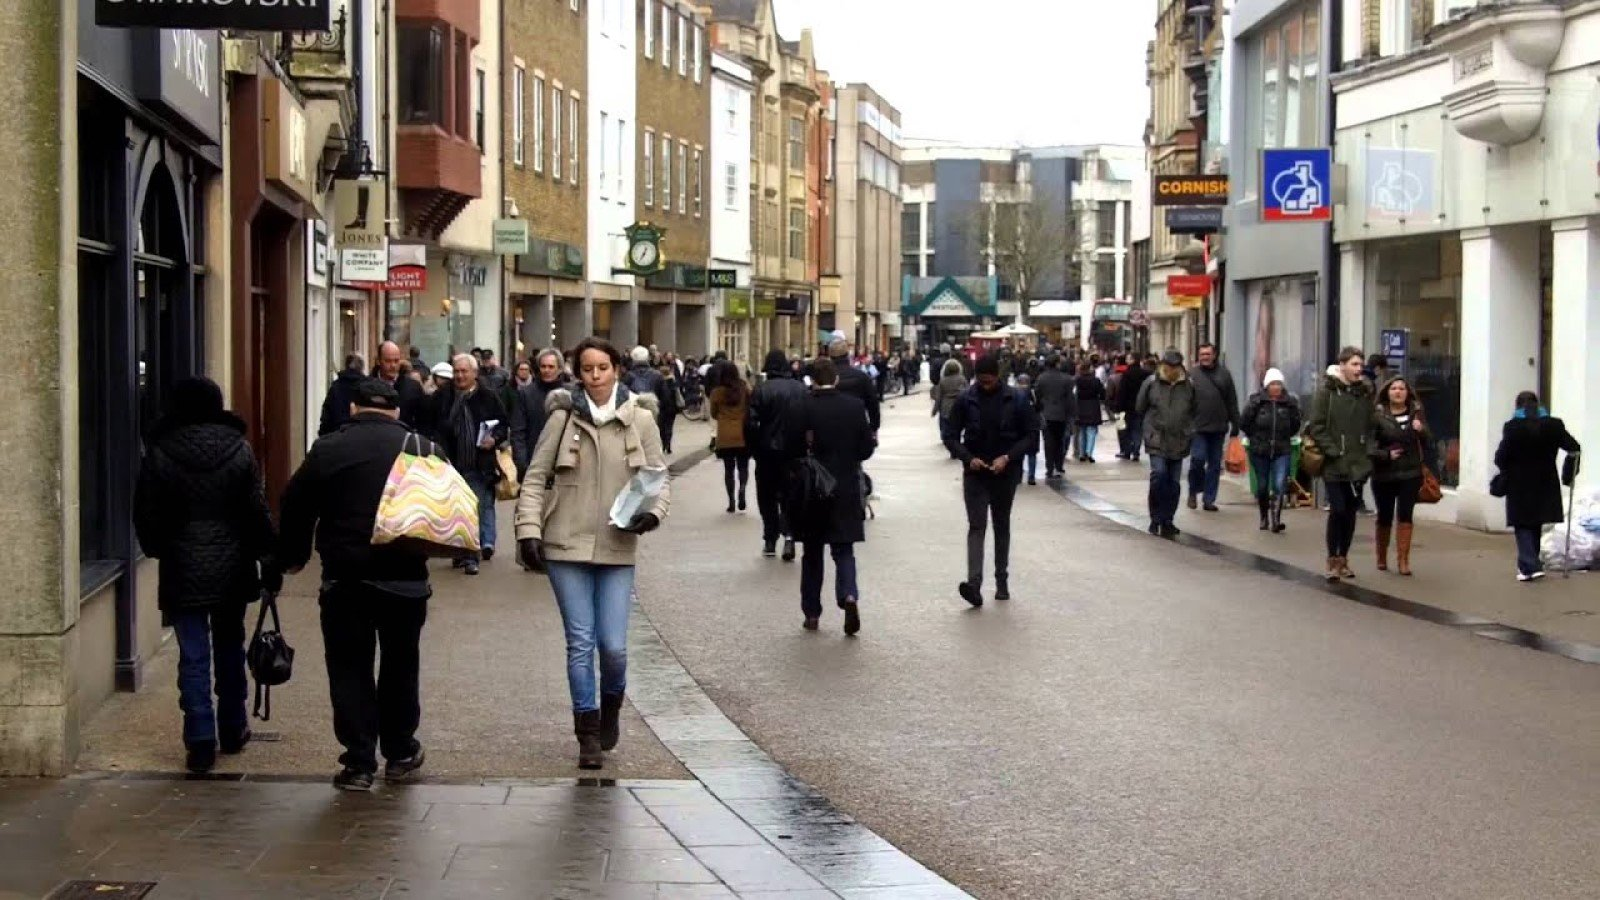 New figures show Oxford city centre has fewer empty shops